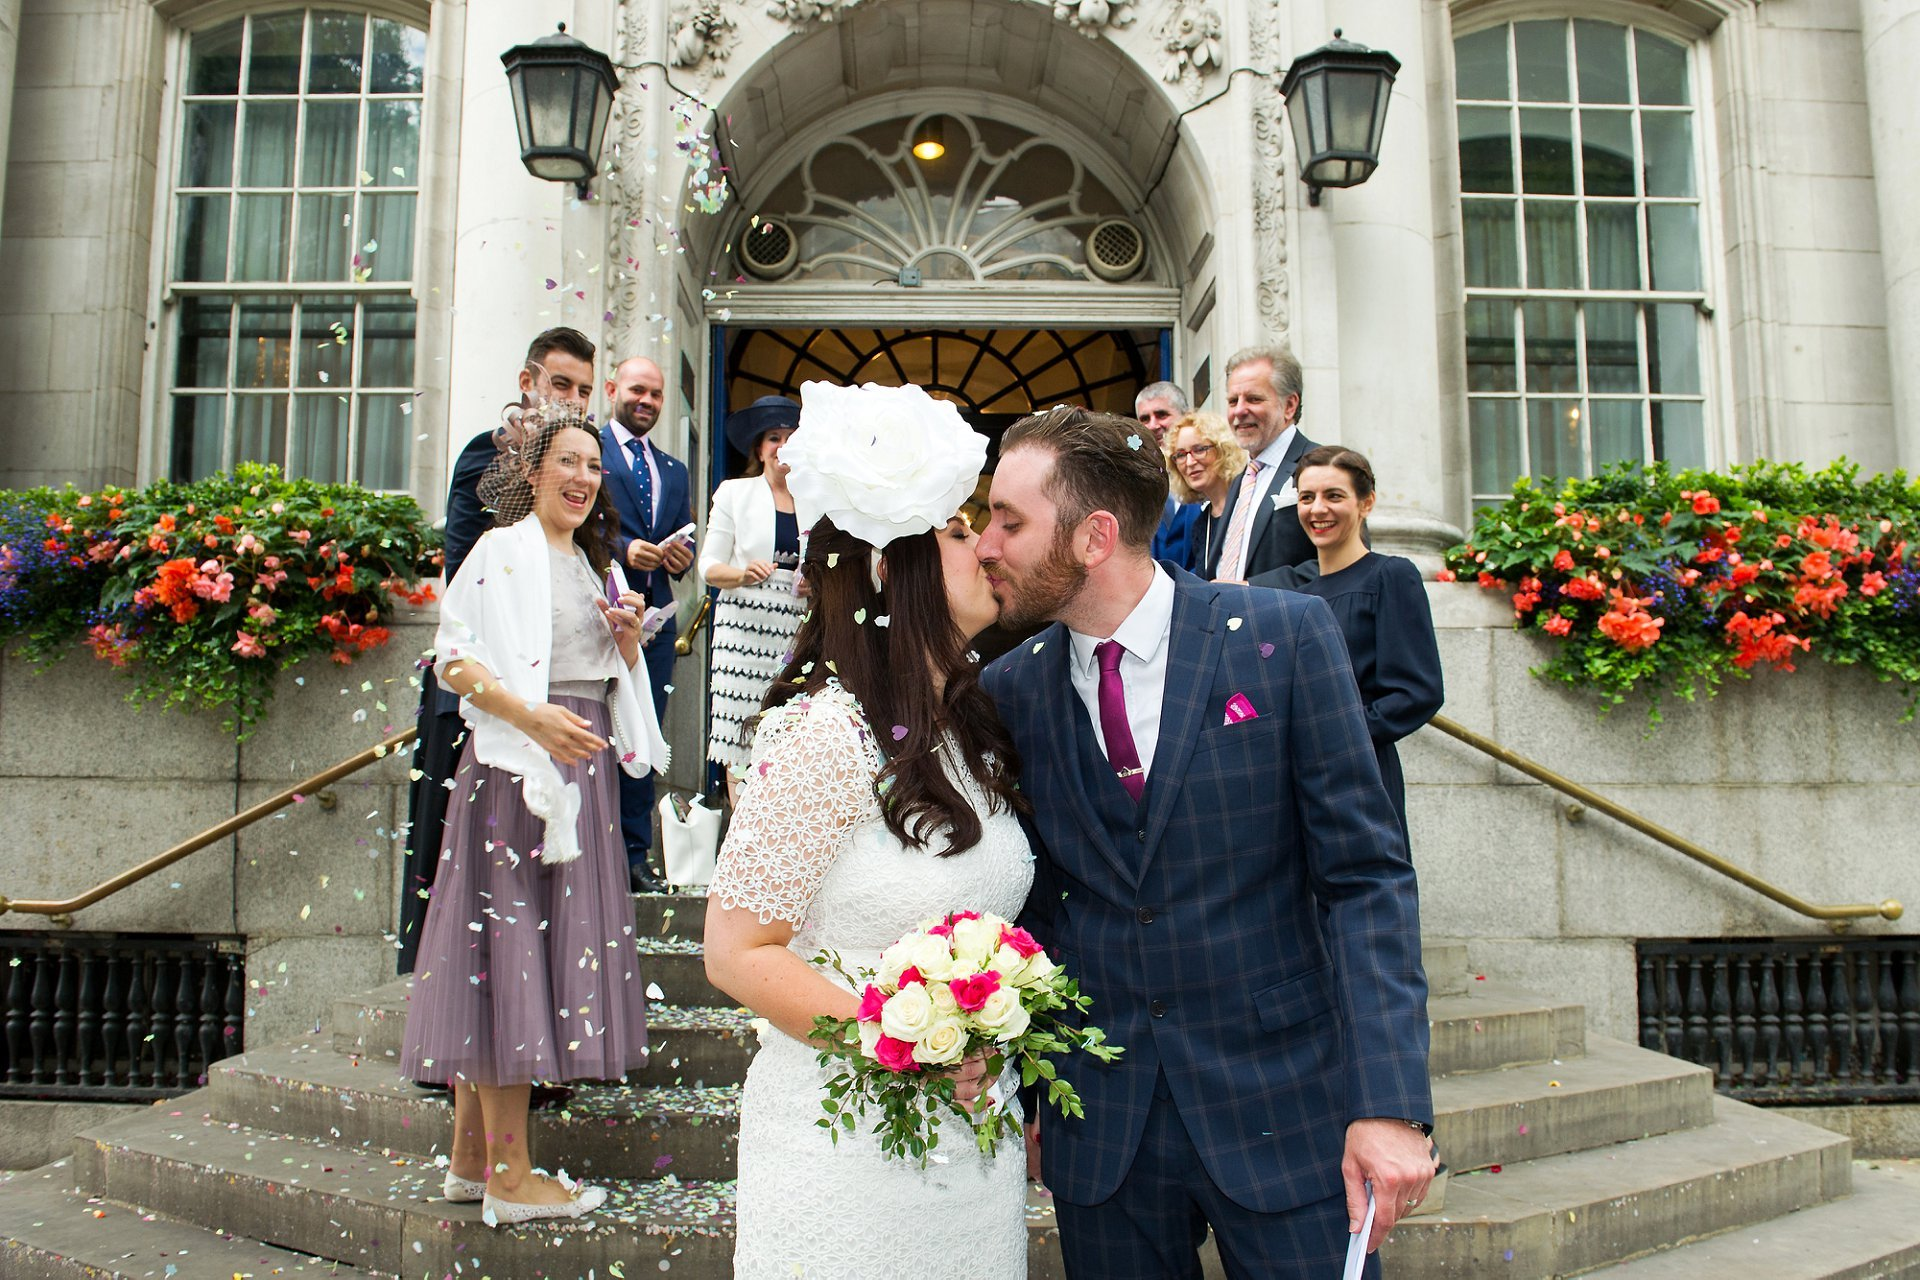 Chelsea Register Office wedding photographer Emma Duggan captures this fun photo of the bride and groom kissing outside Chelsea Old Town Hall with their guests looking on smiling